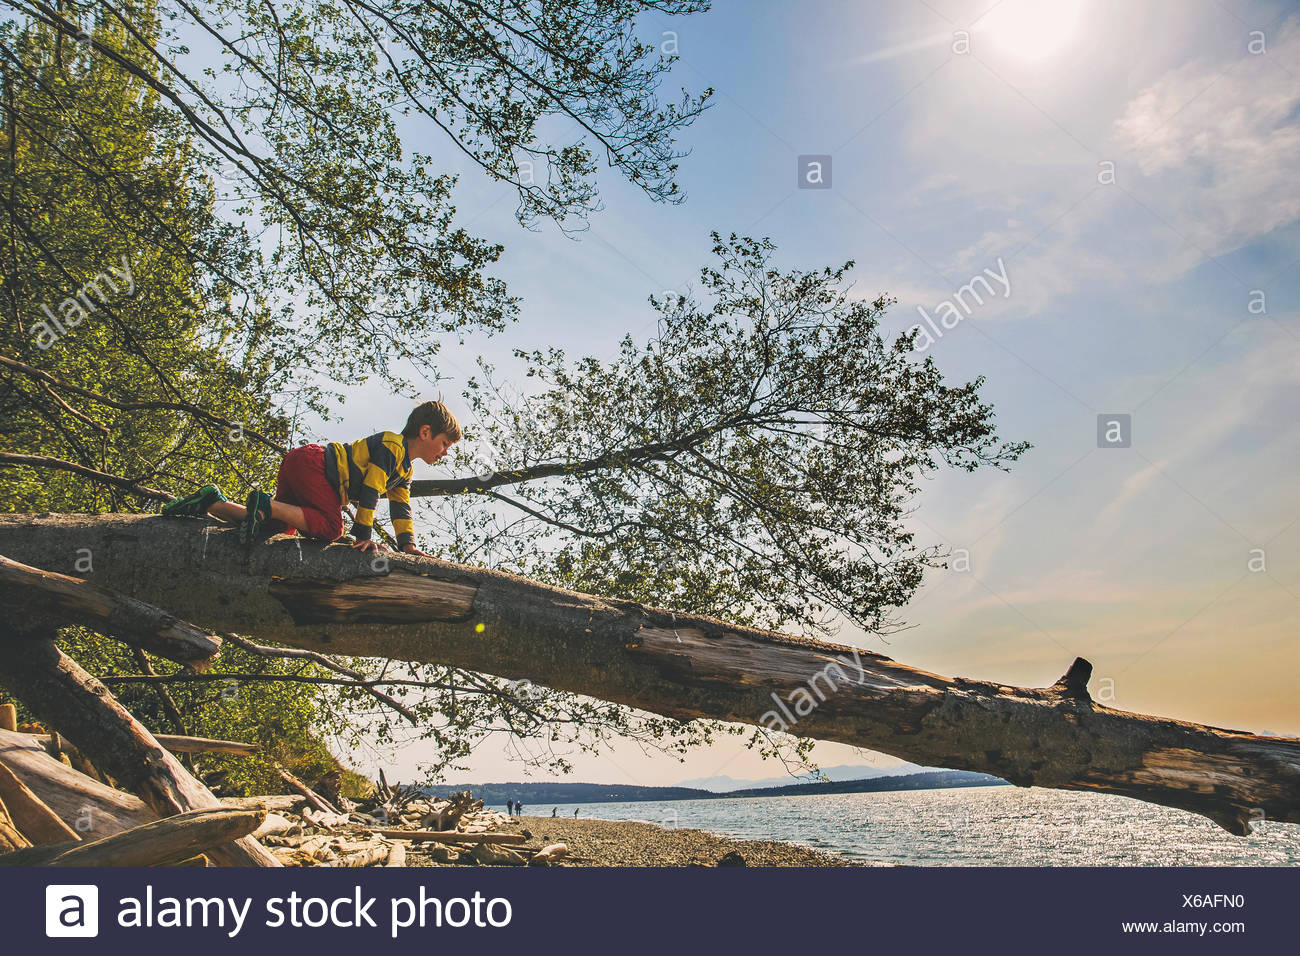 Boy climbing on a tree trunk by a lake - Stock Image